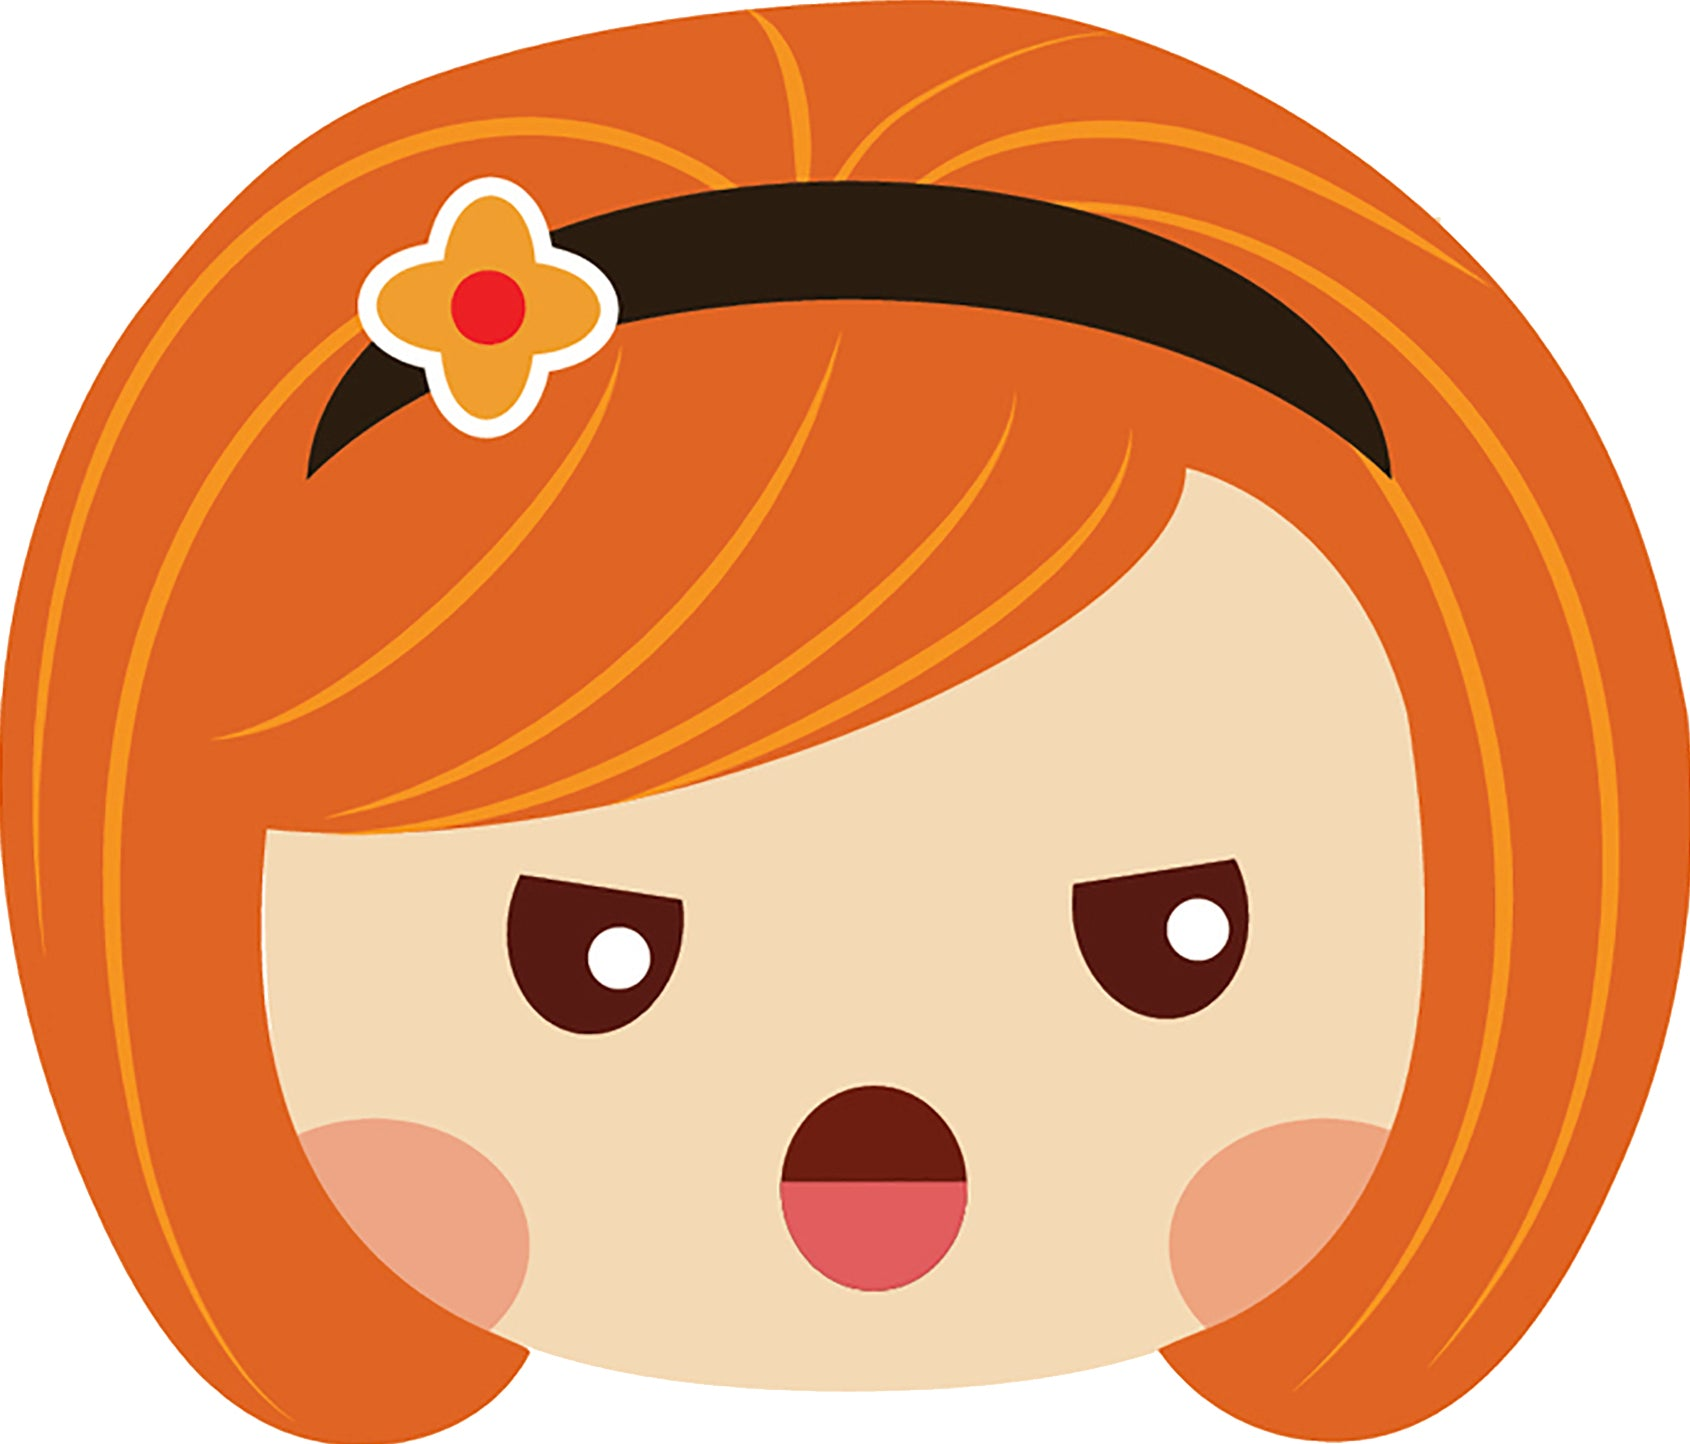 Sweet Little Red Head Kawaii School Girl Emoji #3 Vinyl Decal Sticker